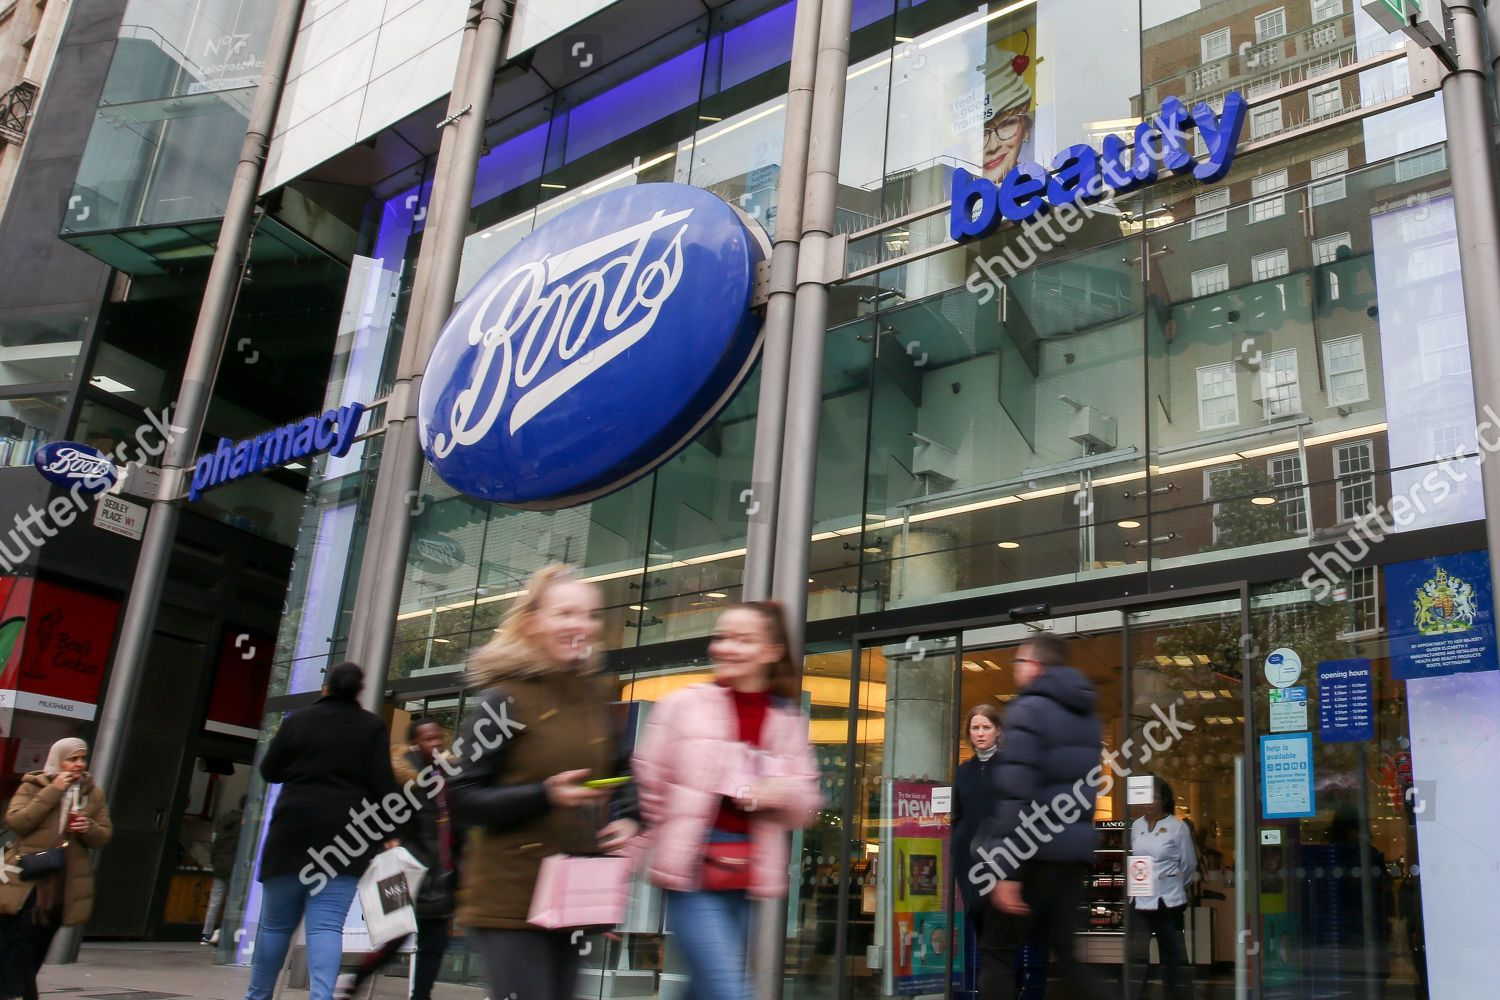 Shoppers walk past Boots store on Oxford Editorial Stock